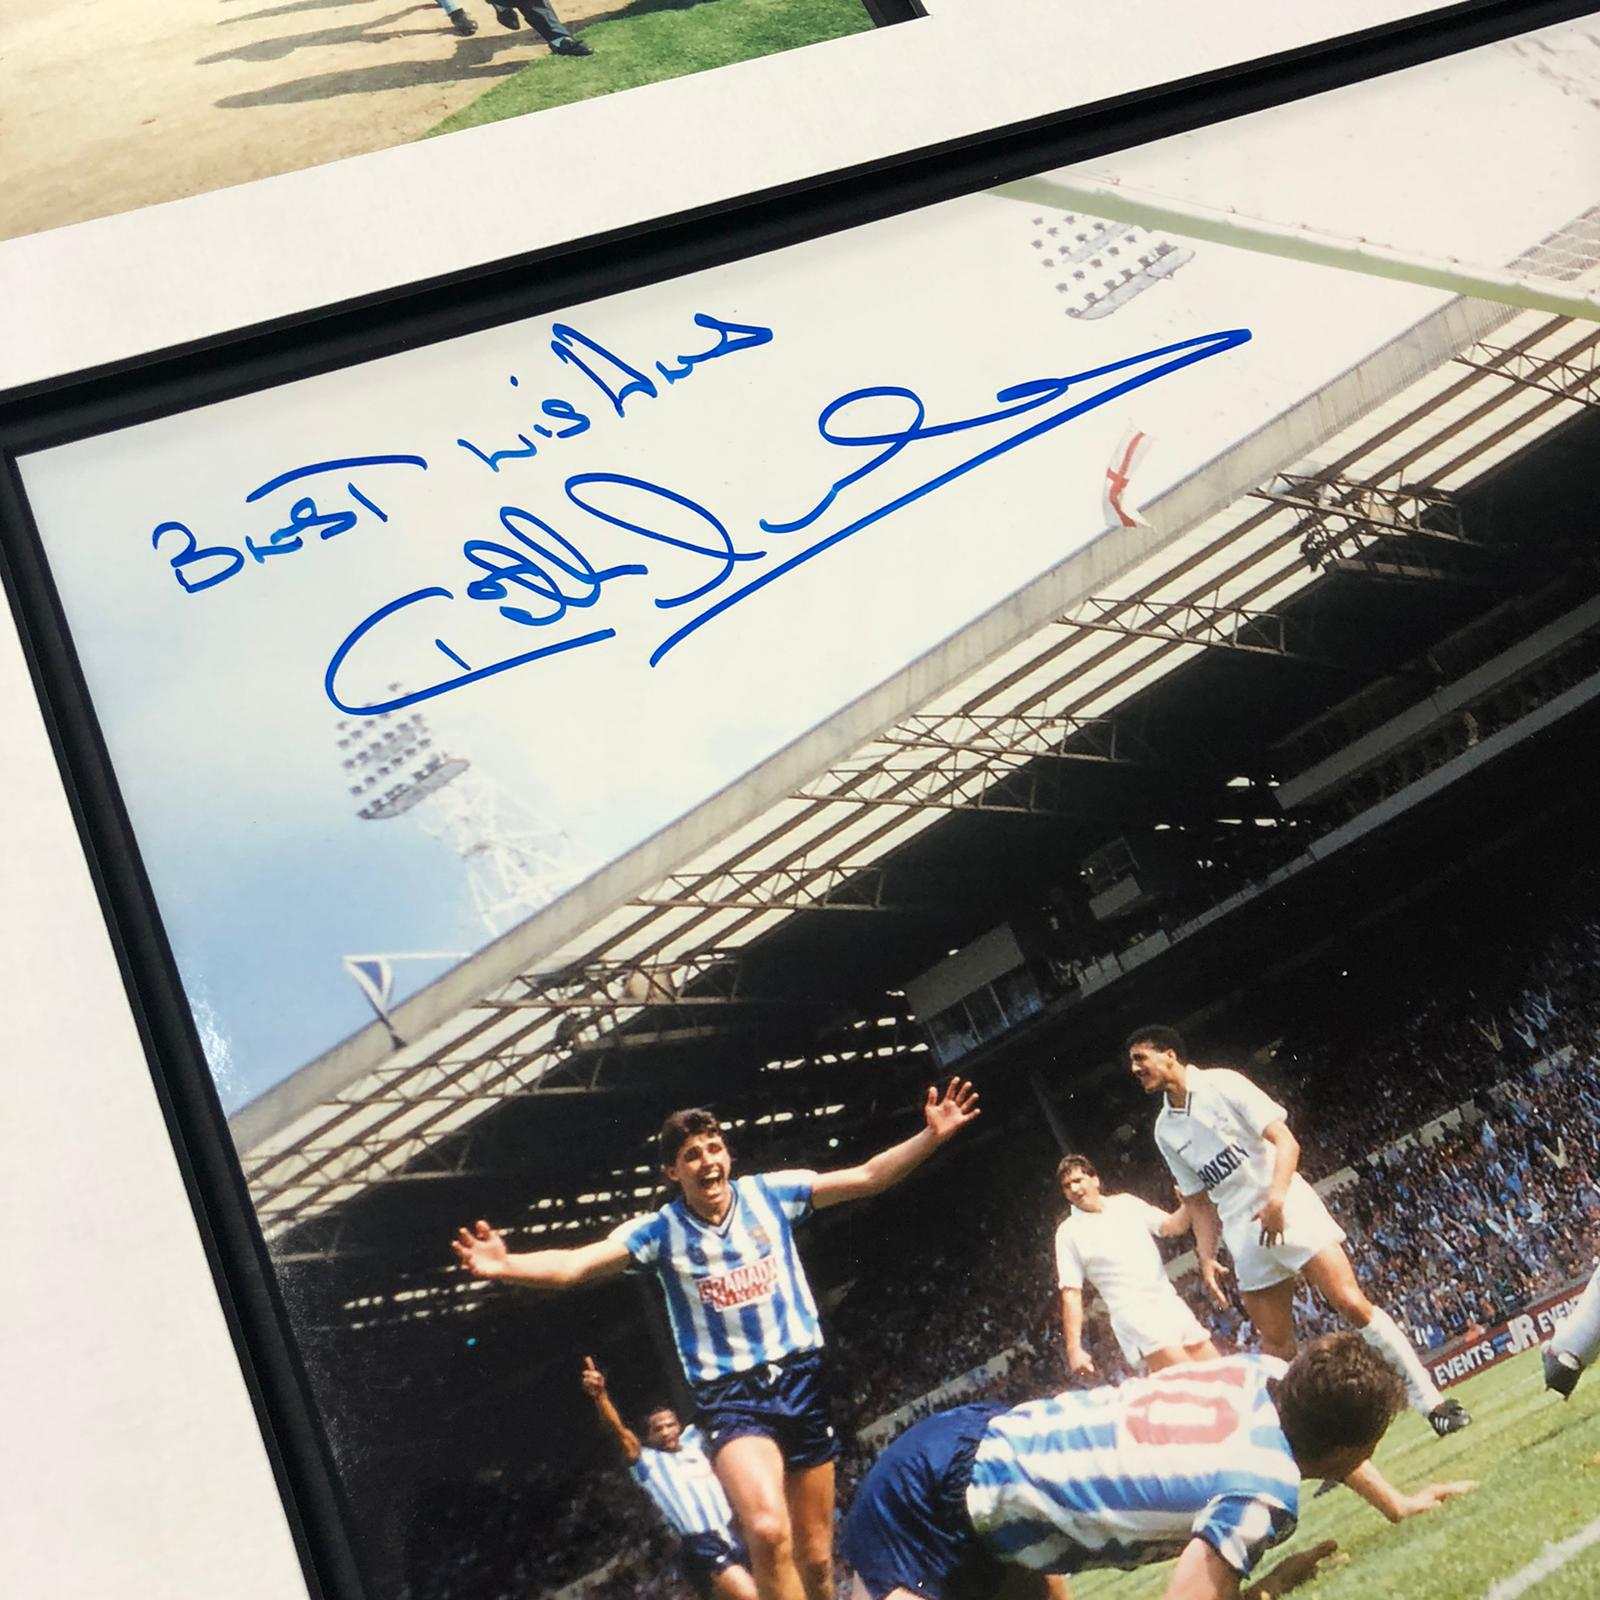 Coventry City 1987 FA Cup Celebration signed by Keith Houchen with COA